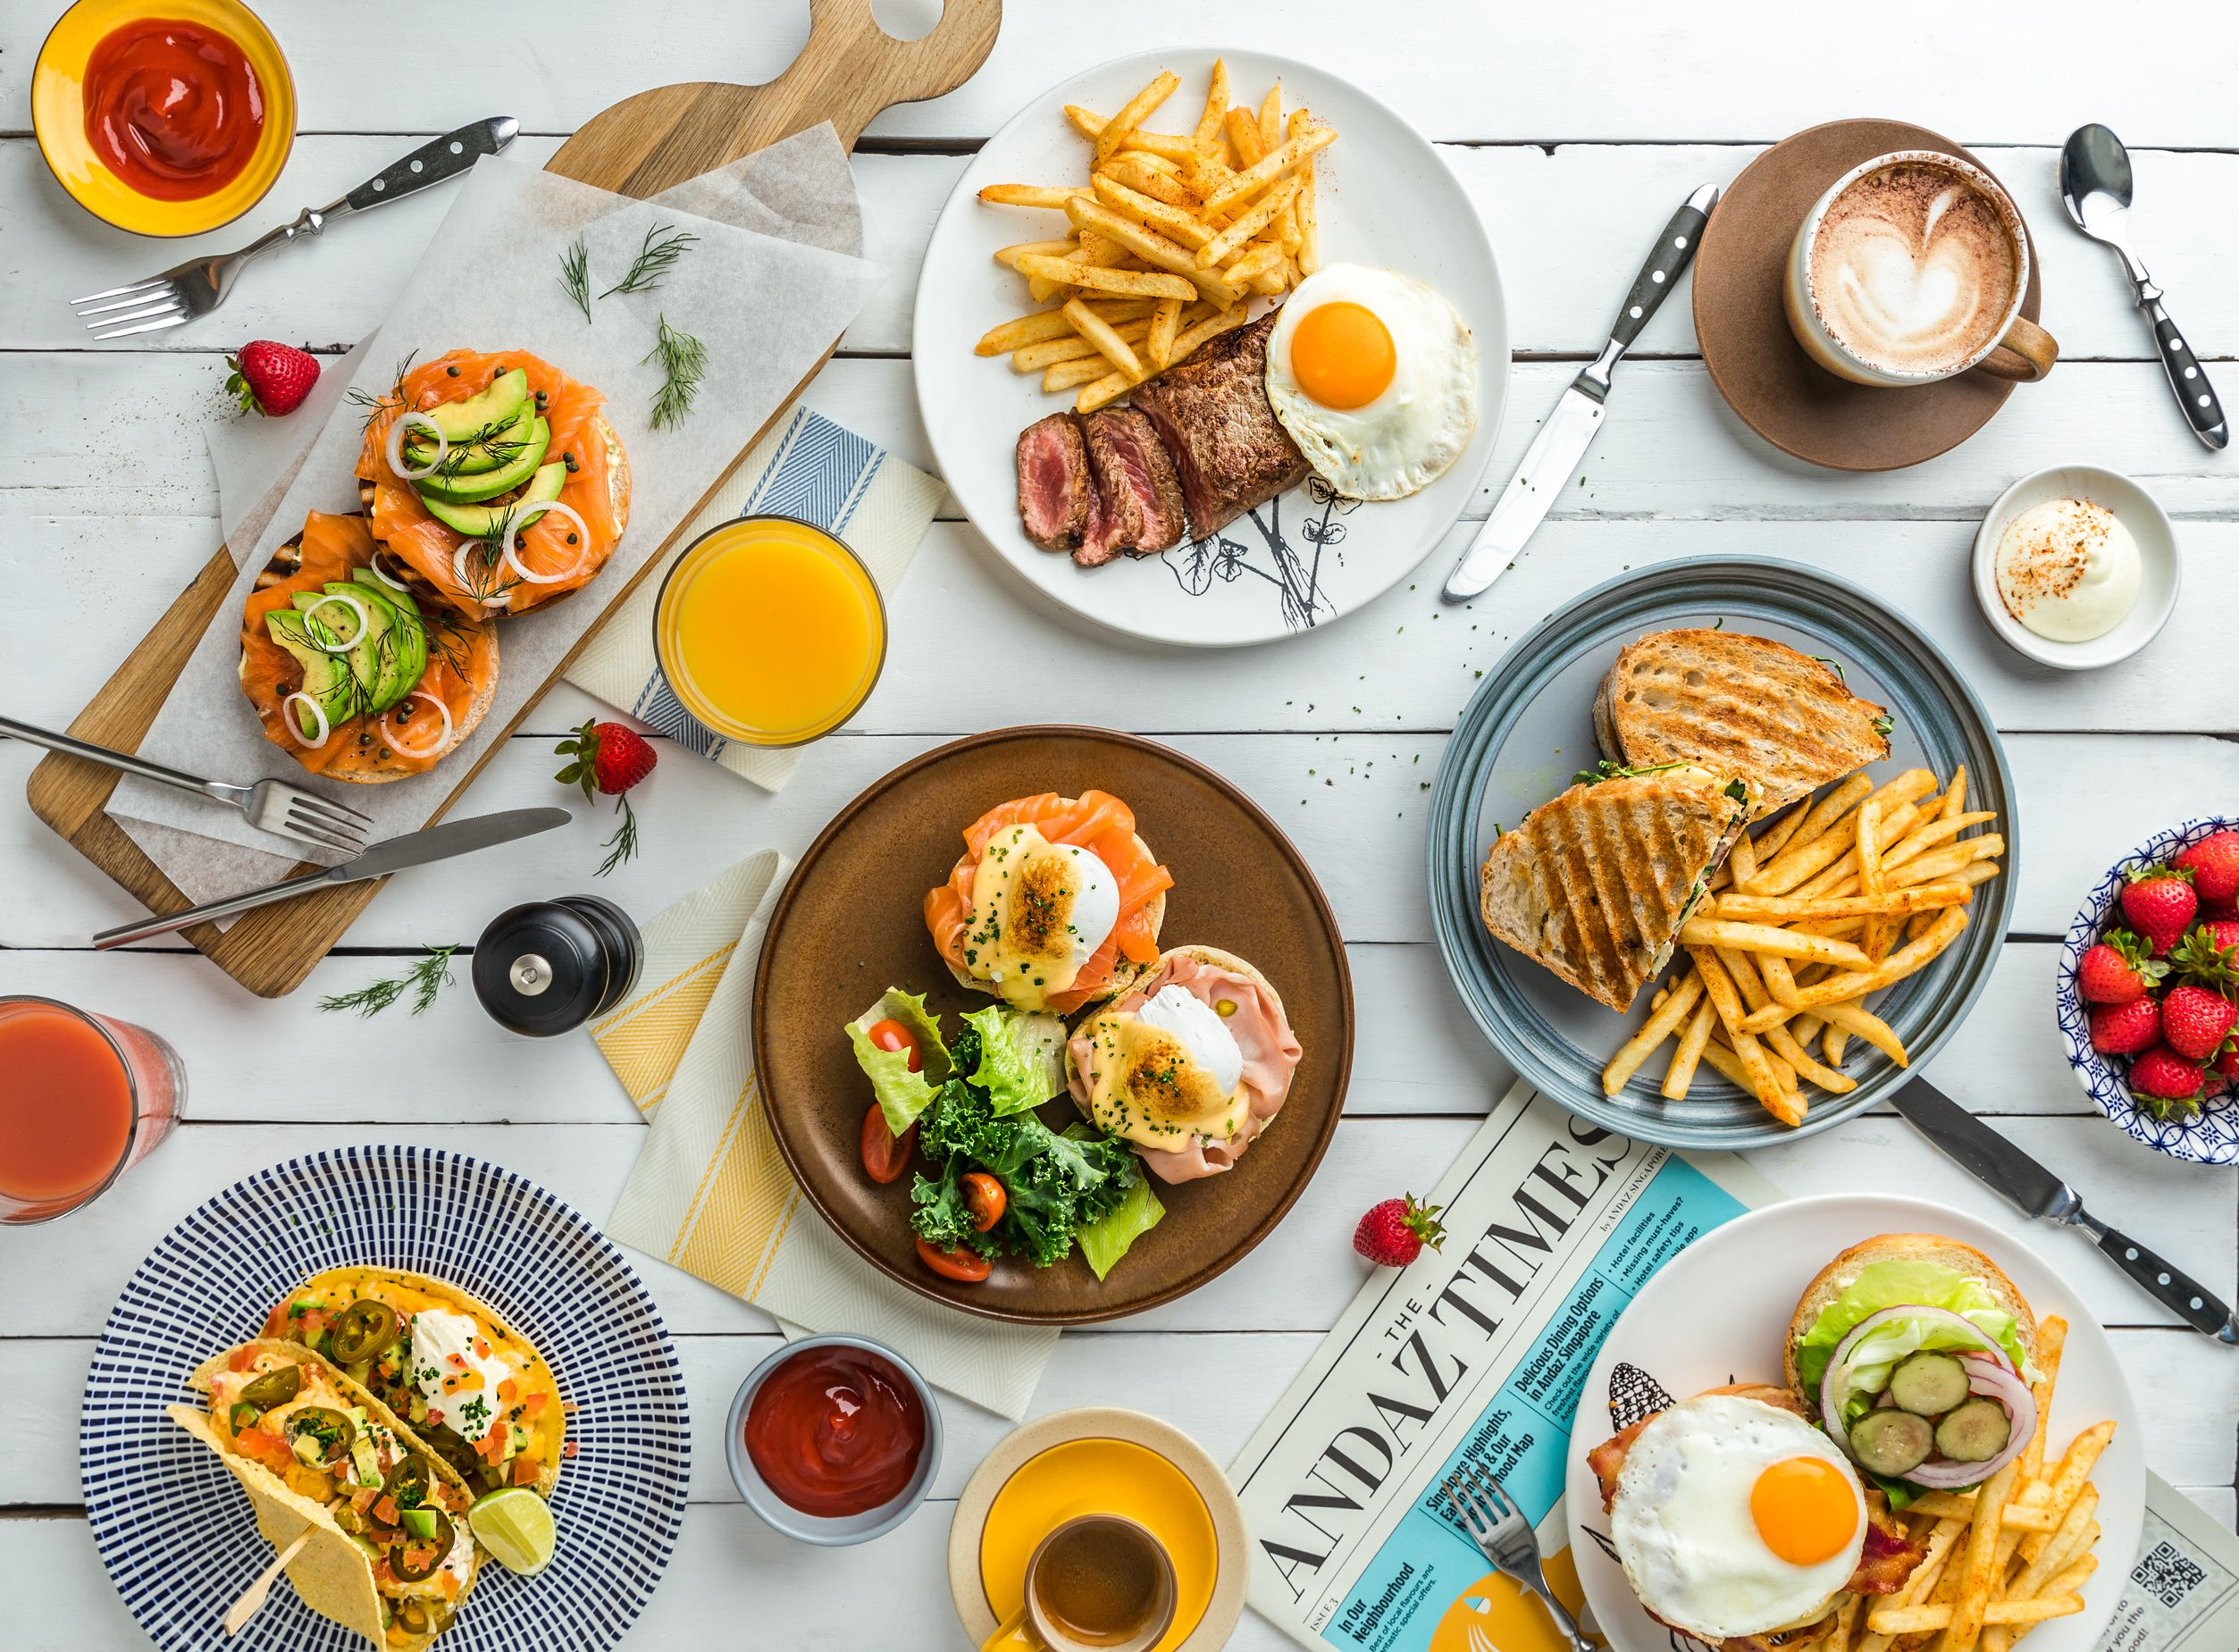 5 new restaurants and menus to try in Singapore in June 2019